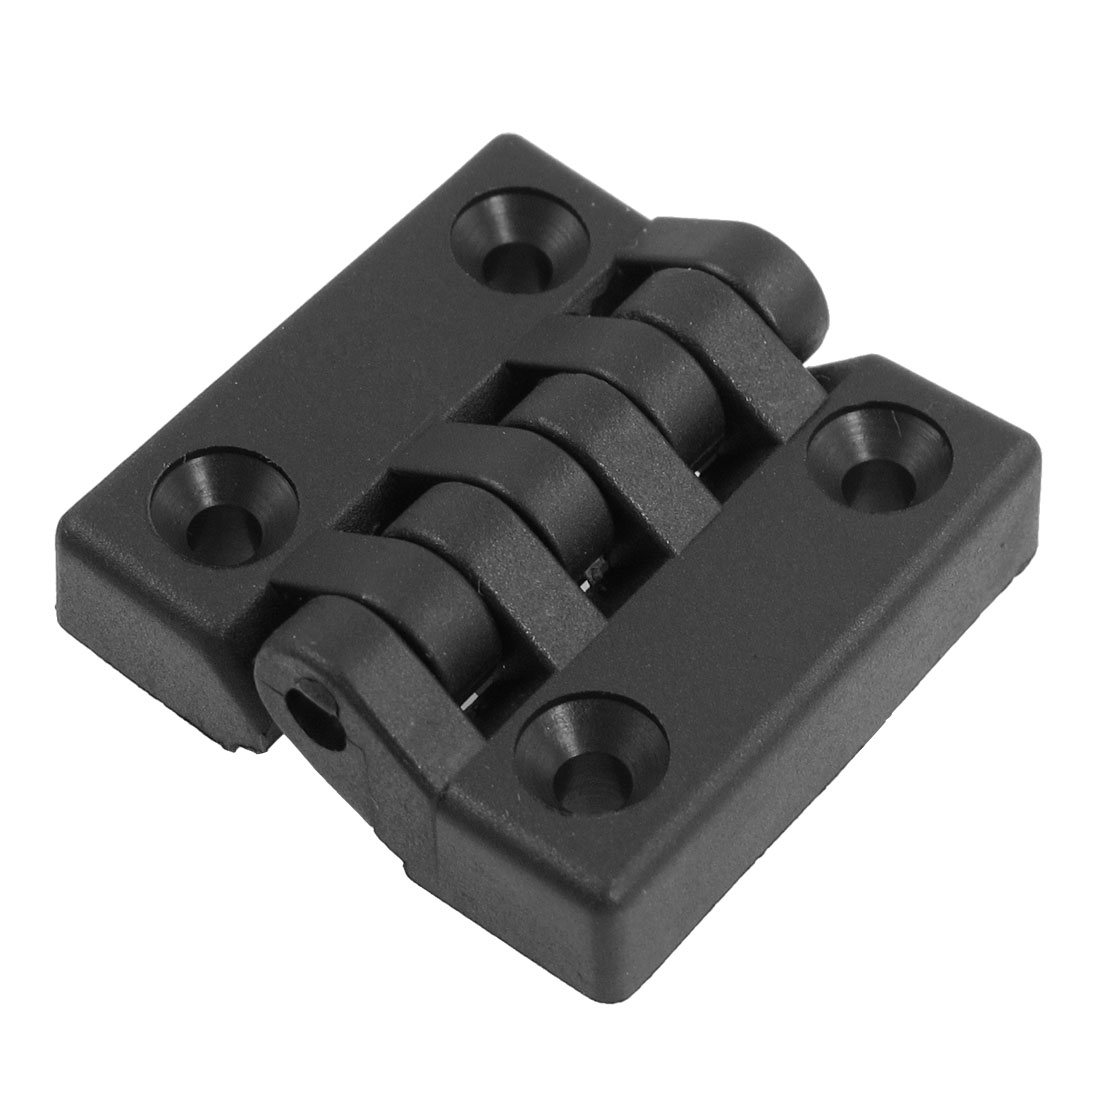 40mm x 40mm Countersunk Hole Plastic Cabinet Ball Bearing Hinge Black